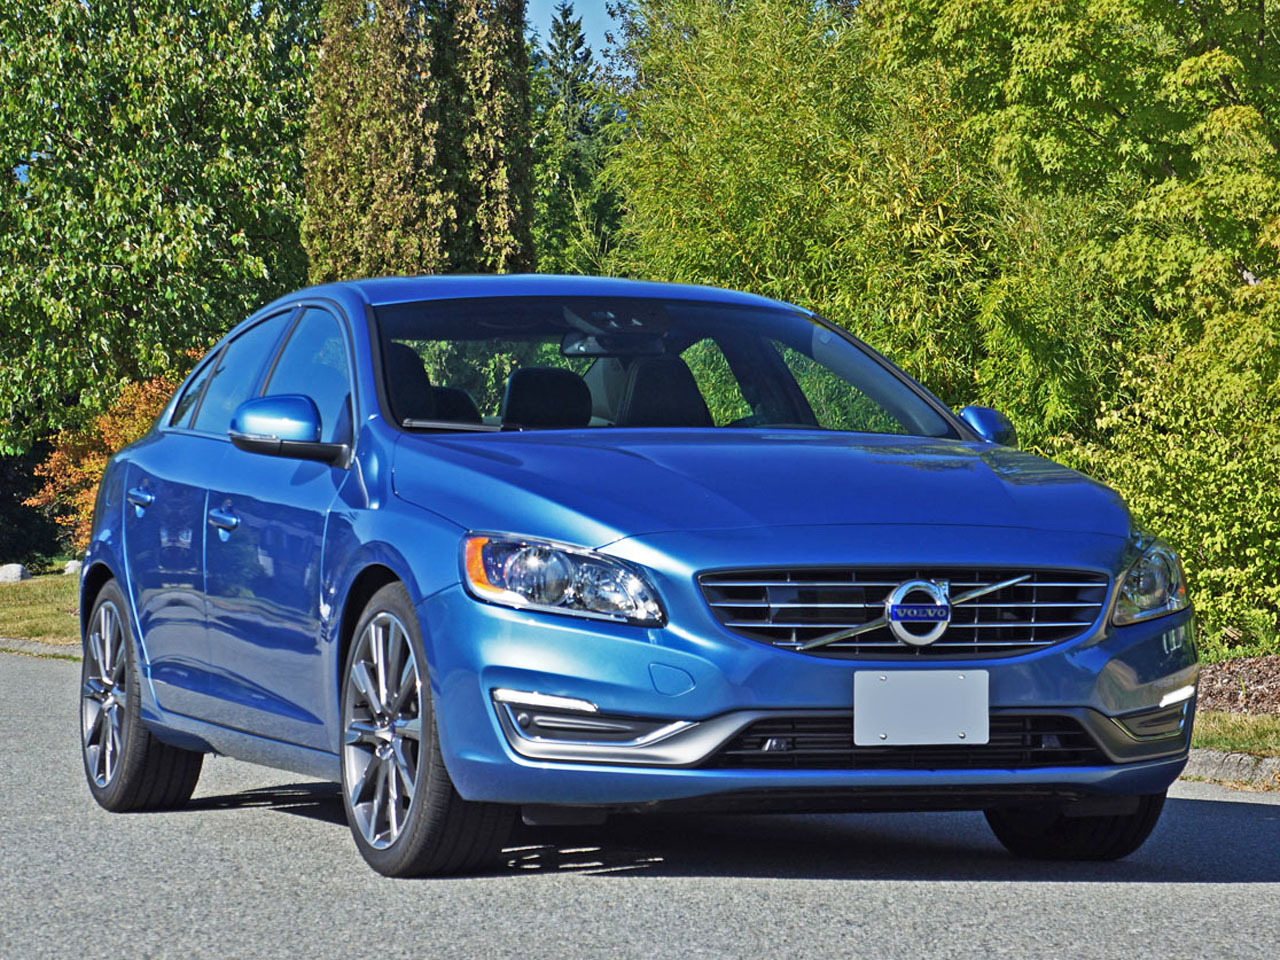 2015 Volvo S60 T5 Drive E Road Test Review Carcostcanada